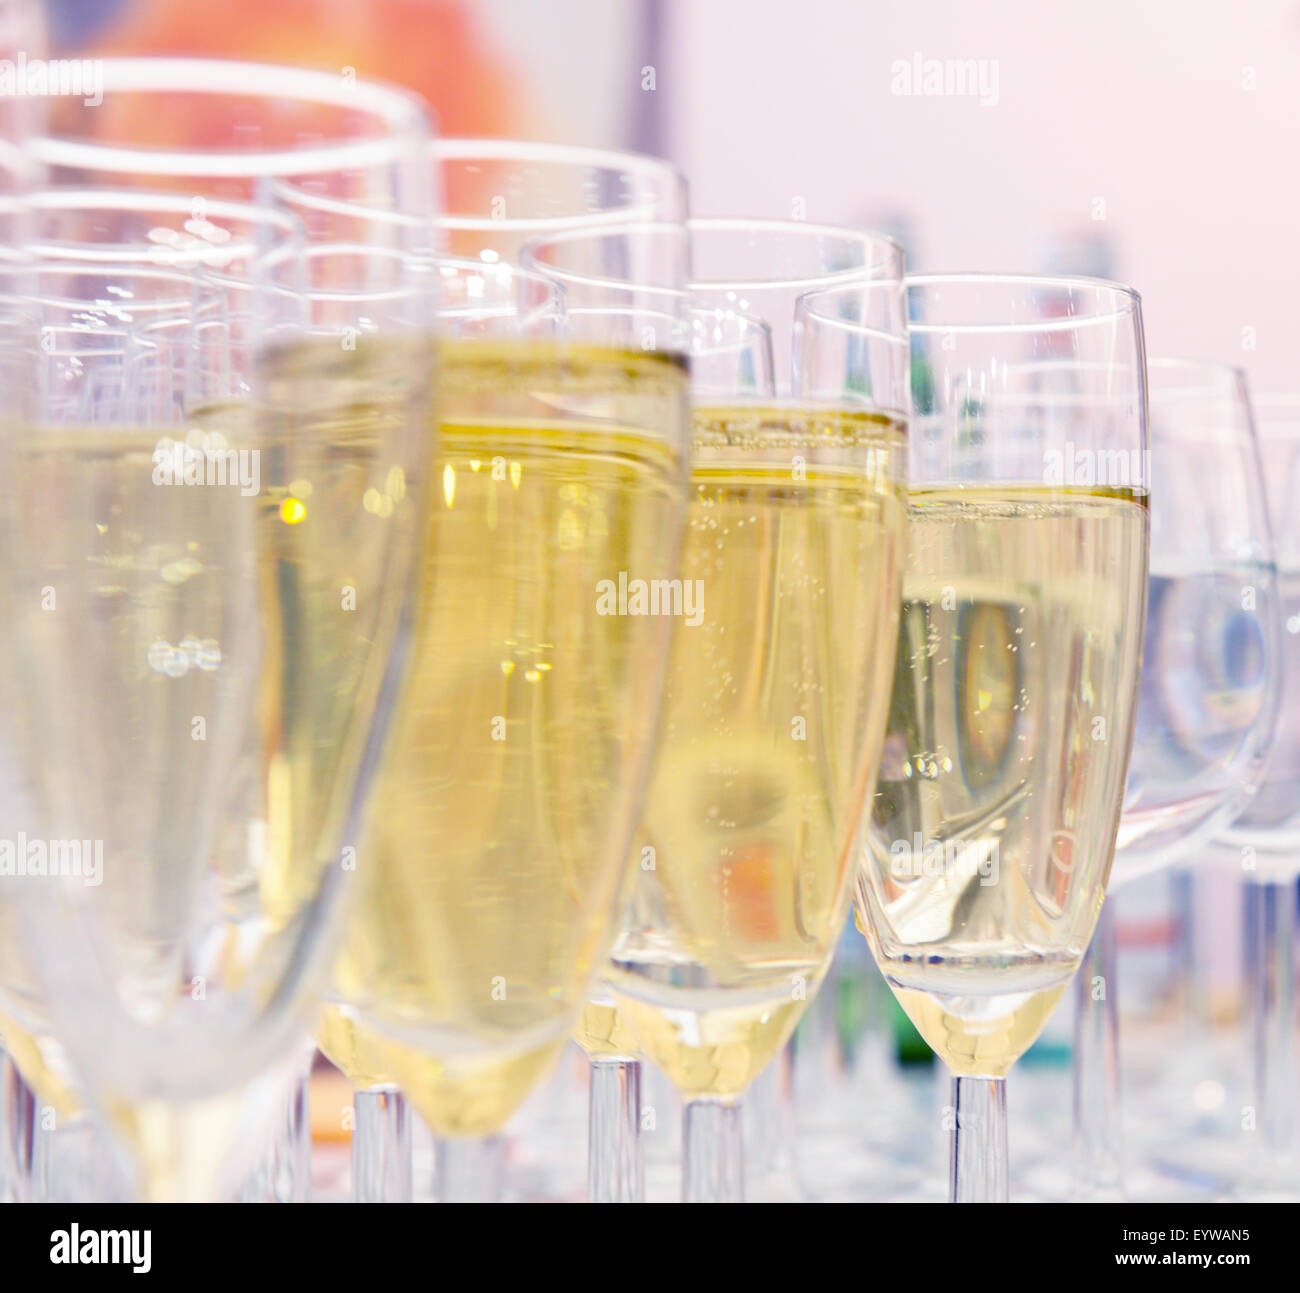 clean glasses of champagne on the table - Stock Image